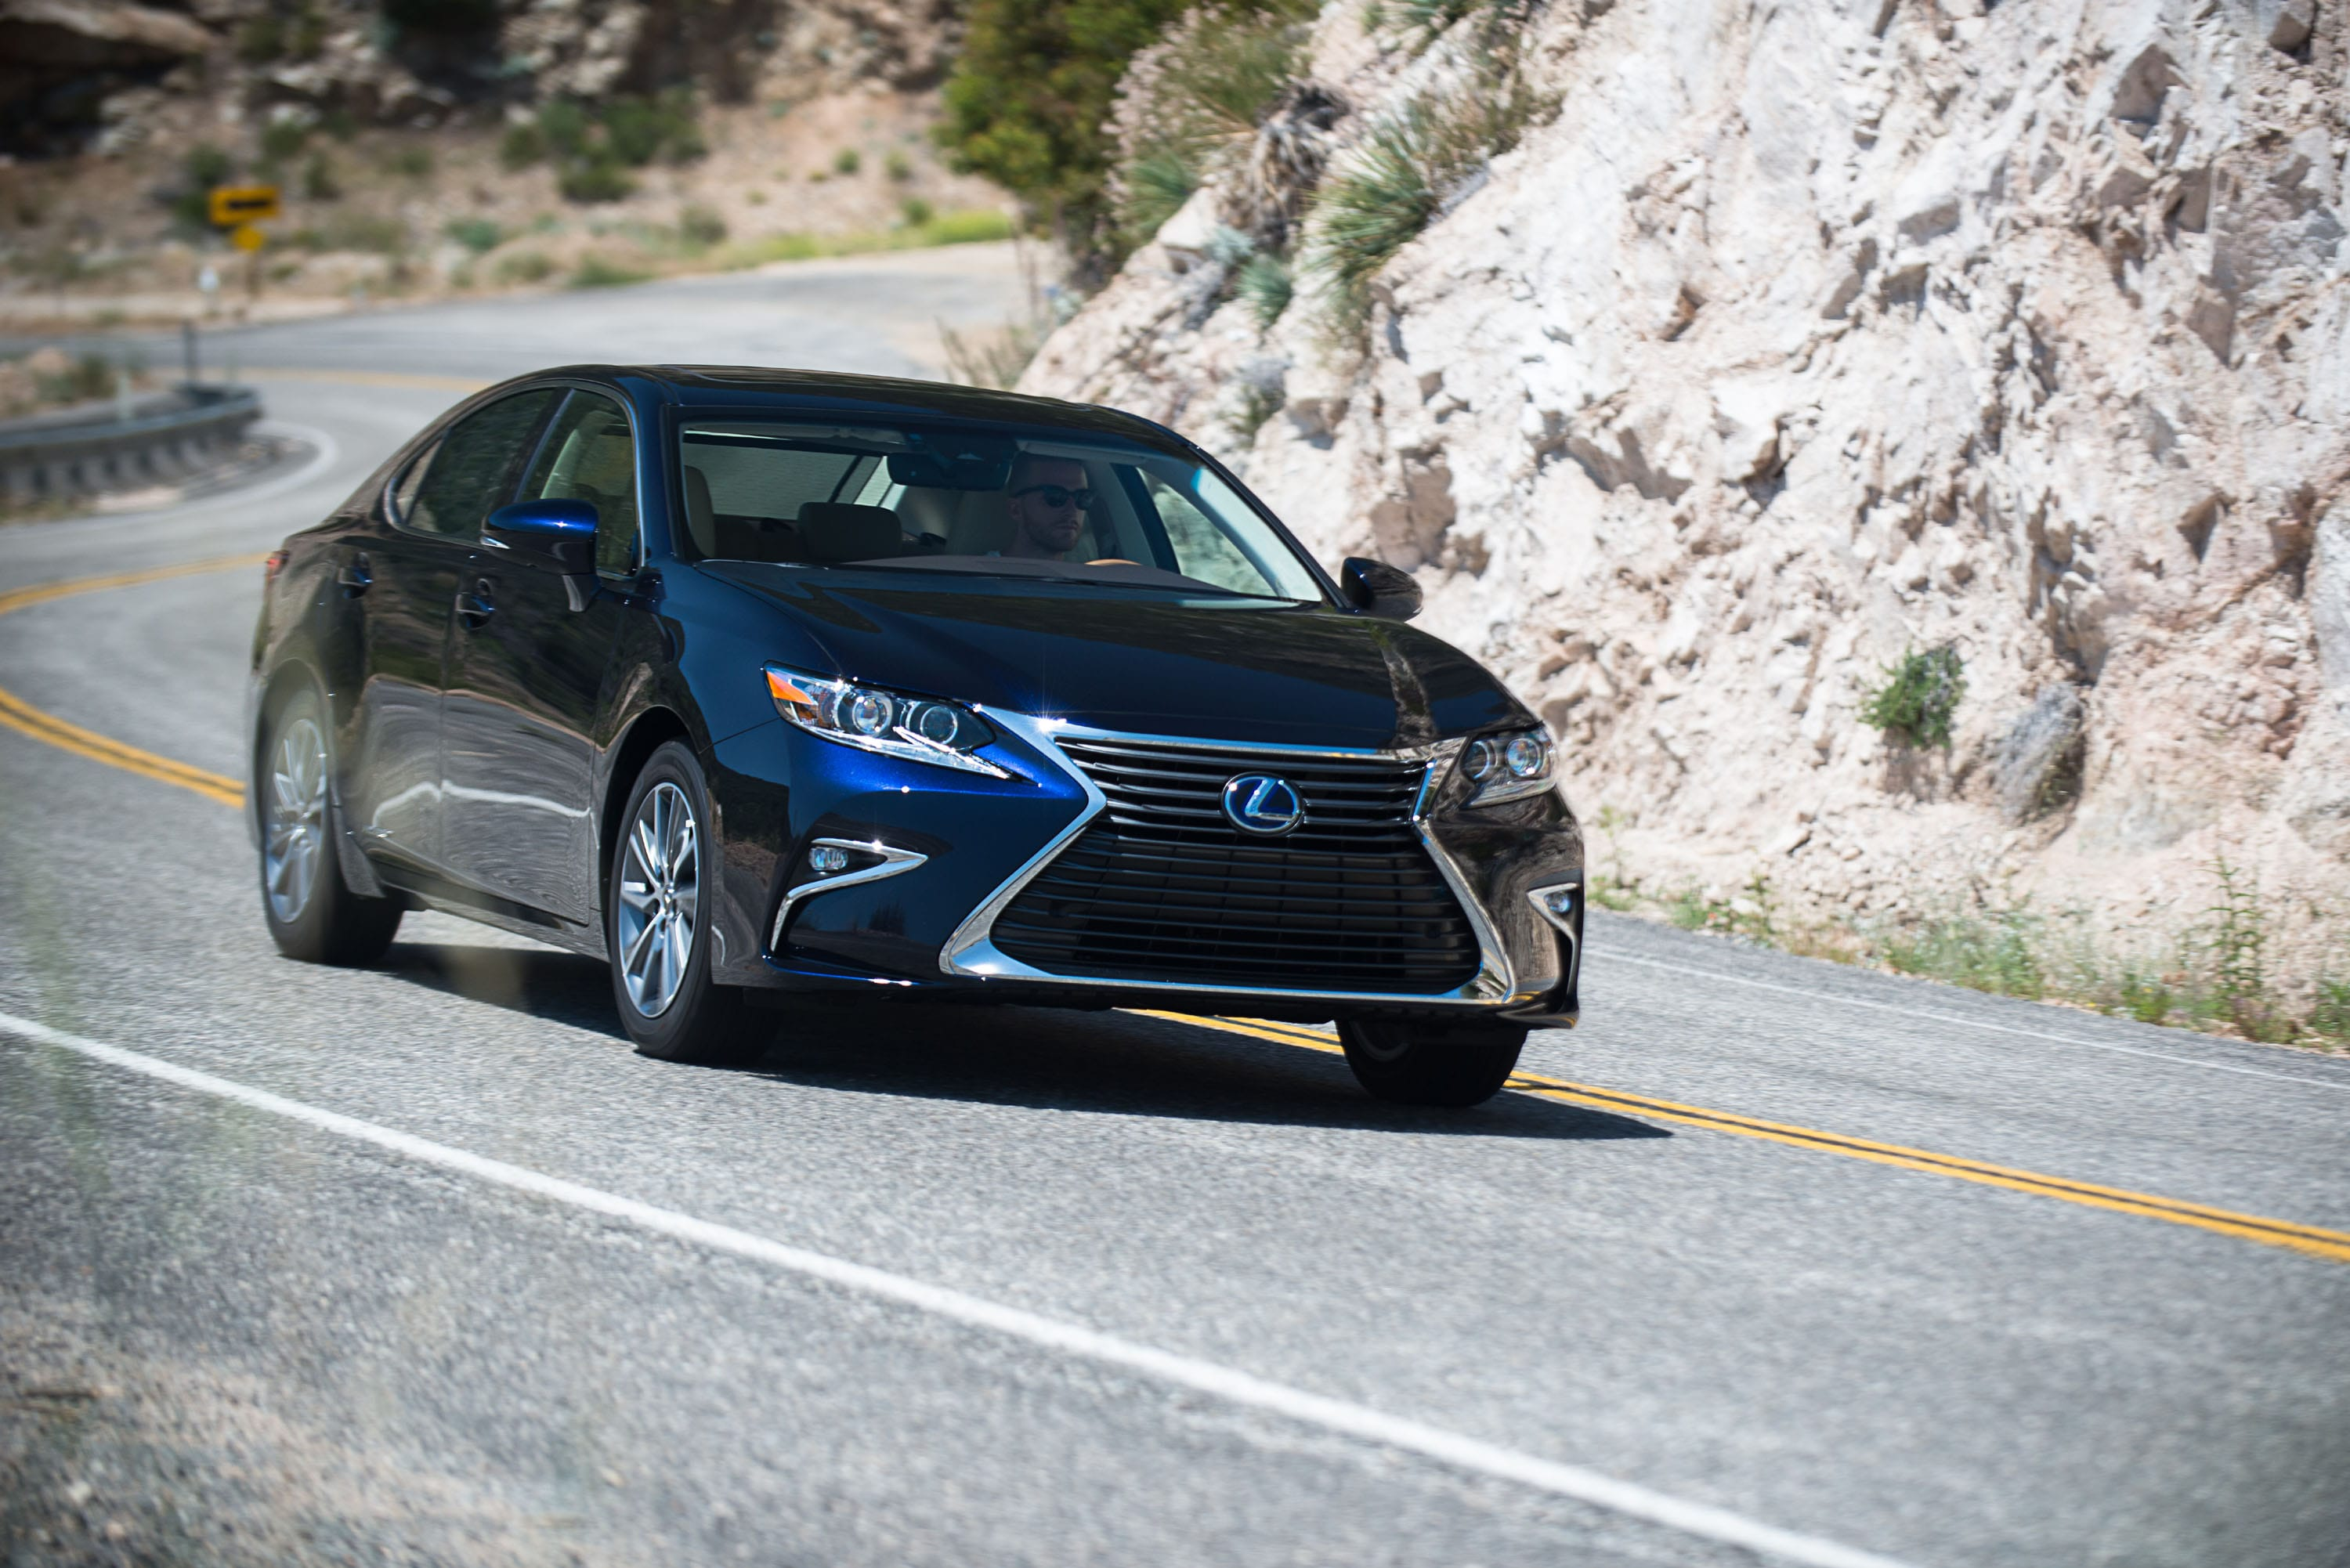 Lexus RX 450h ES 300 h And LX 450d India Launch Highlights